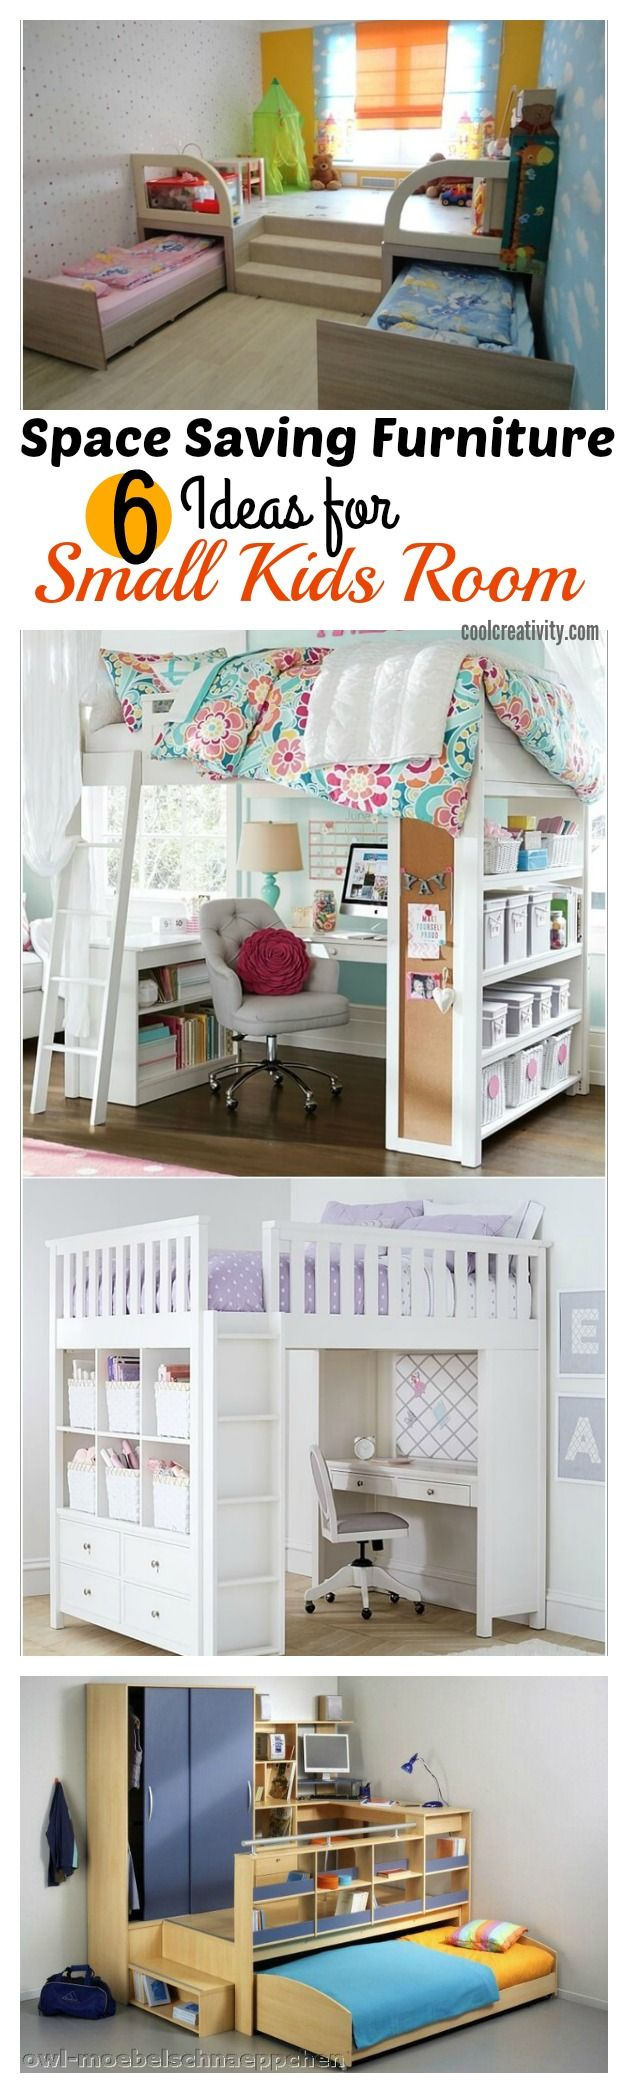 6 space saving furniture ideas for small kids room - Kids Room Furniture Ideas